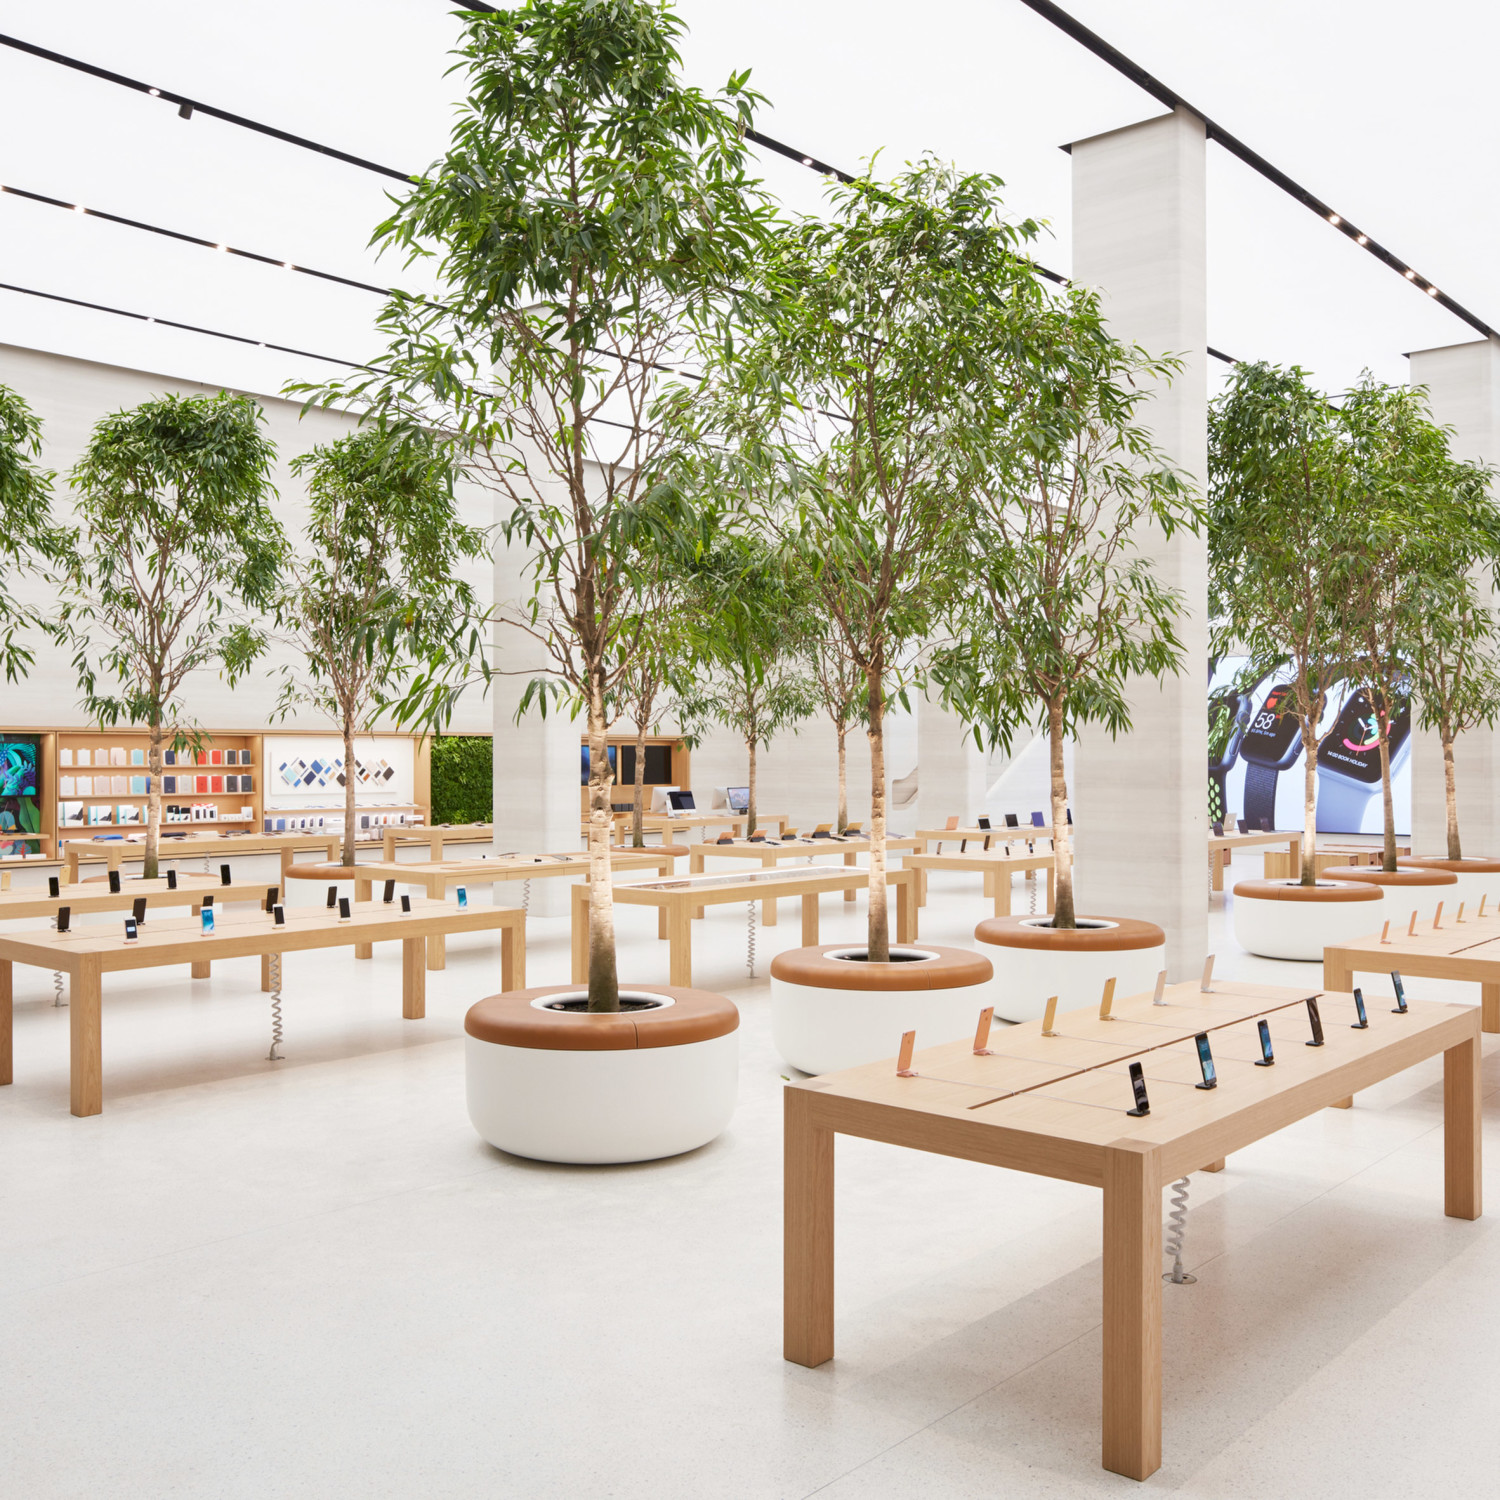 Apple Store - Londra